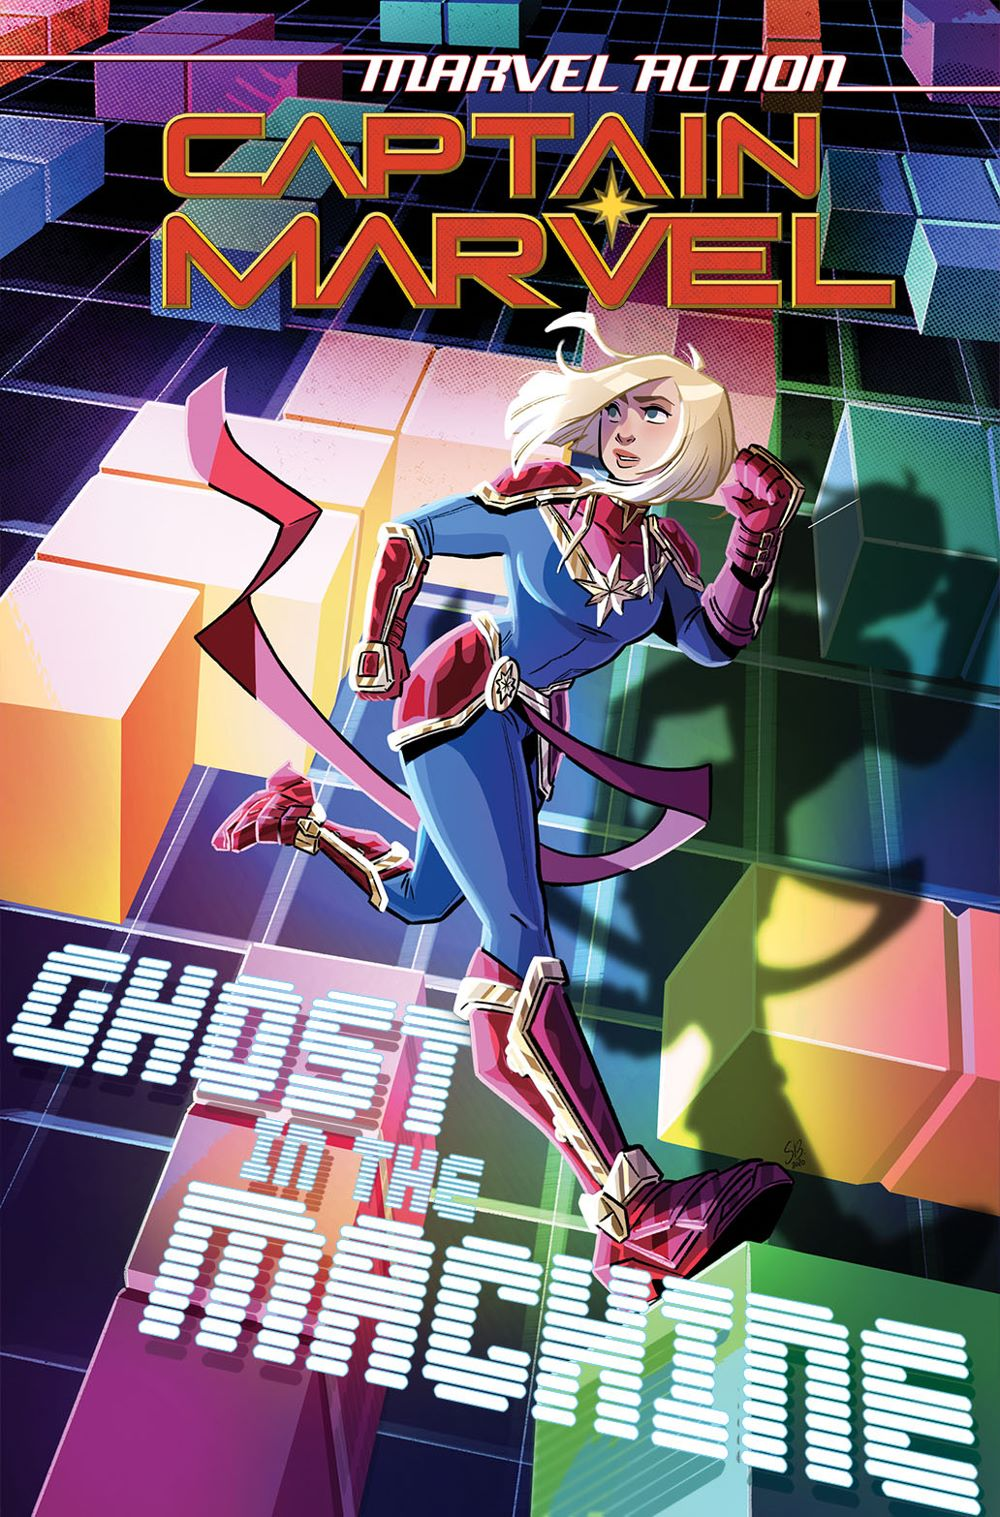 CaptainMarvel_Ghost_inthe_Machine-Cover1-copy IDW Publishing August 2021 Solicitations